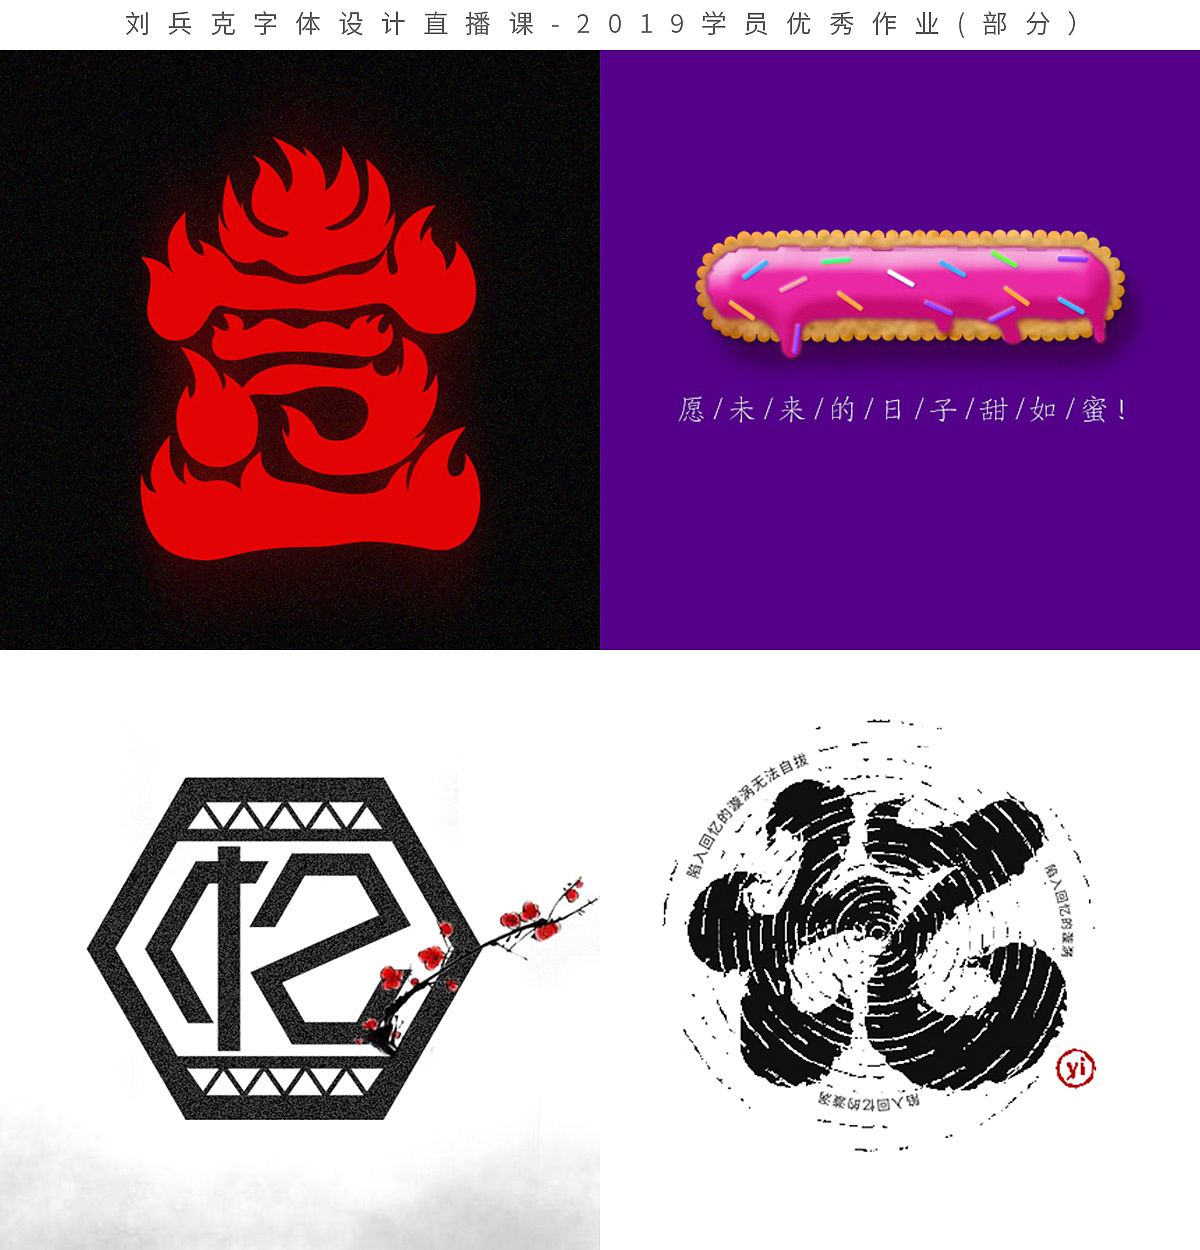 Chinese Creative Font Design-This wave, a total of 100, has about 400 excellent creative font works